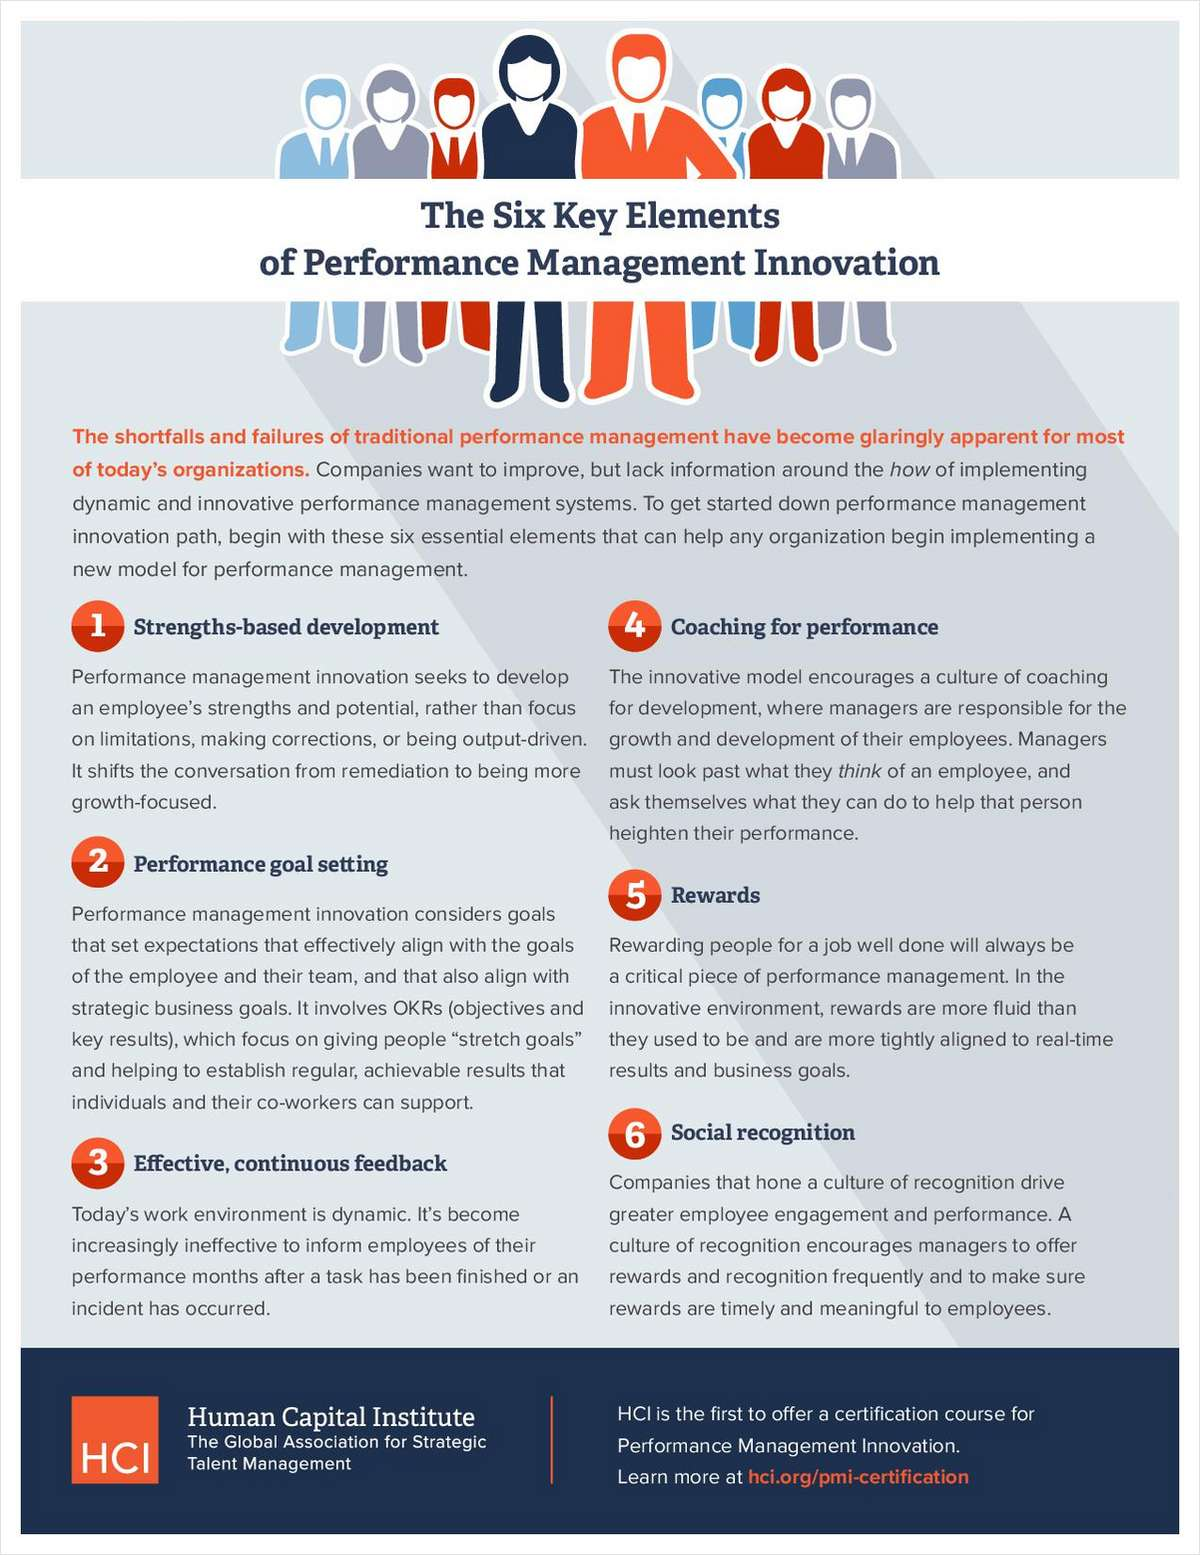 The Six Key Elements of Performance Management Innovation